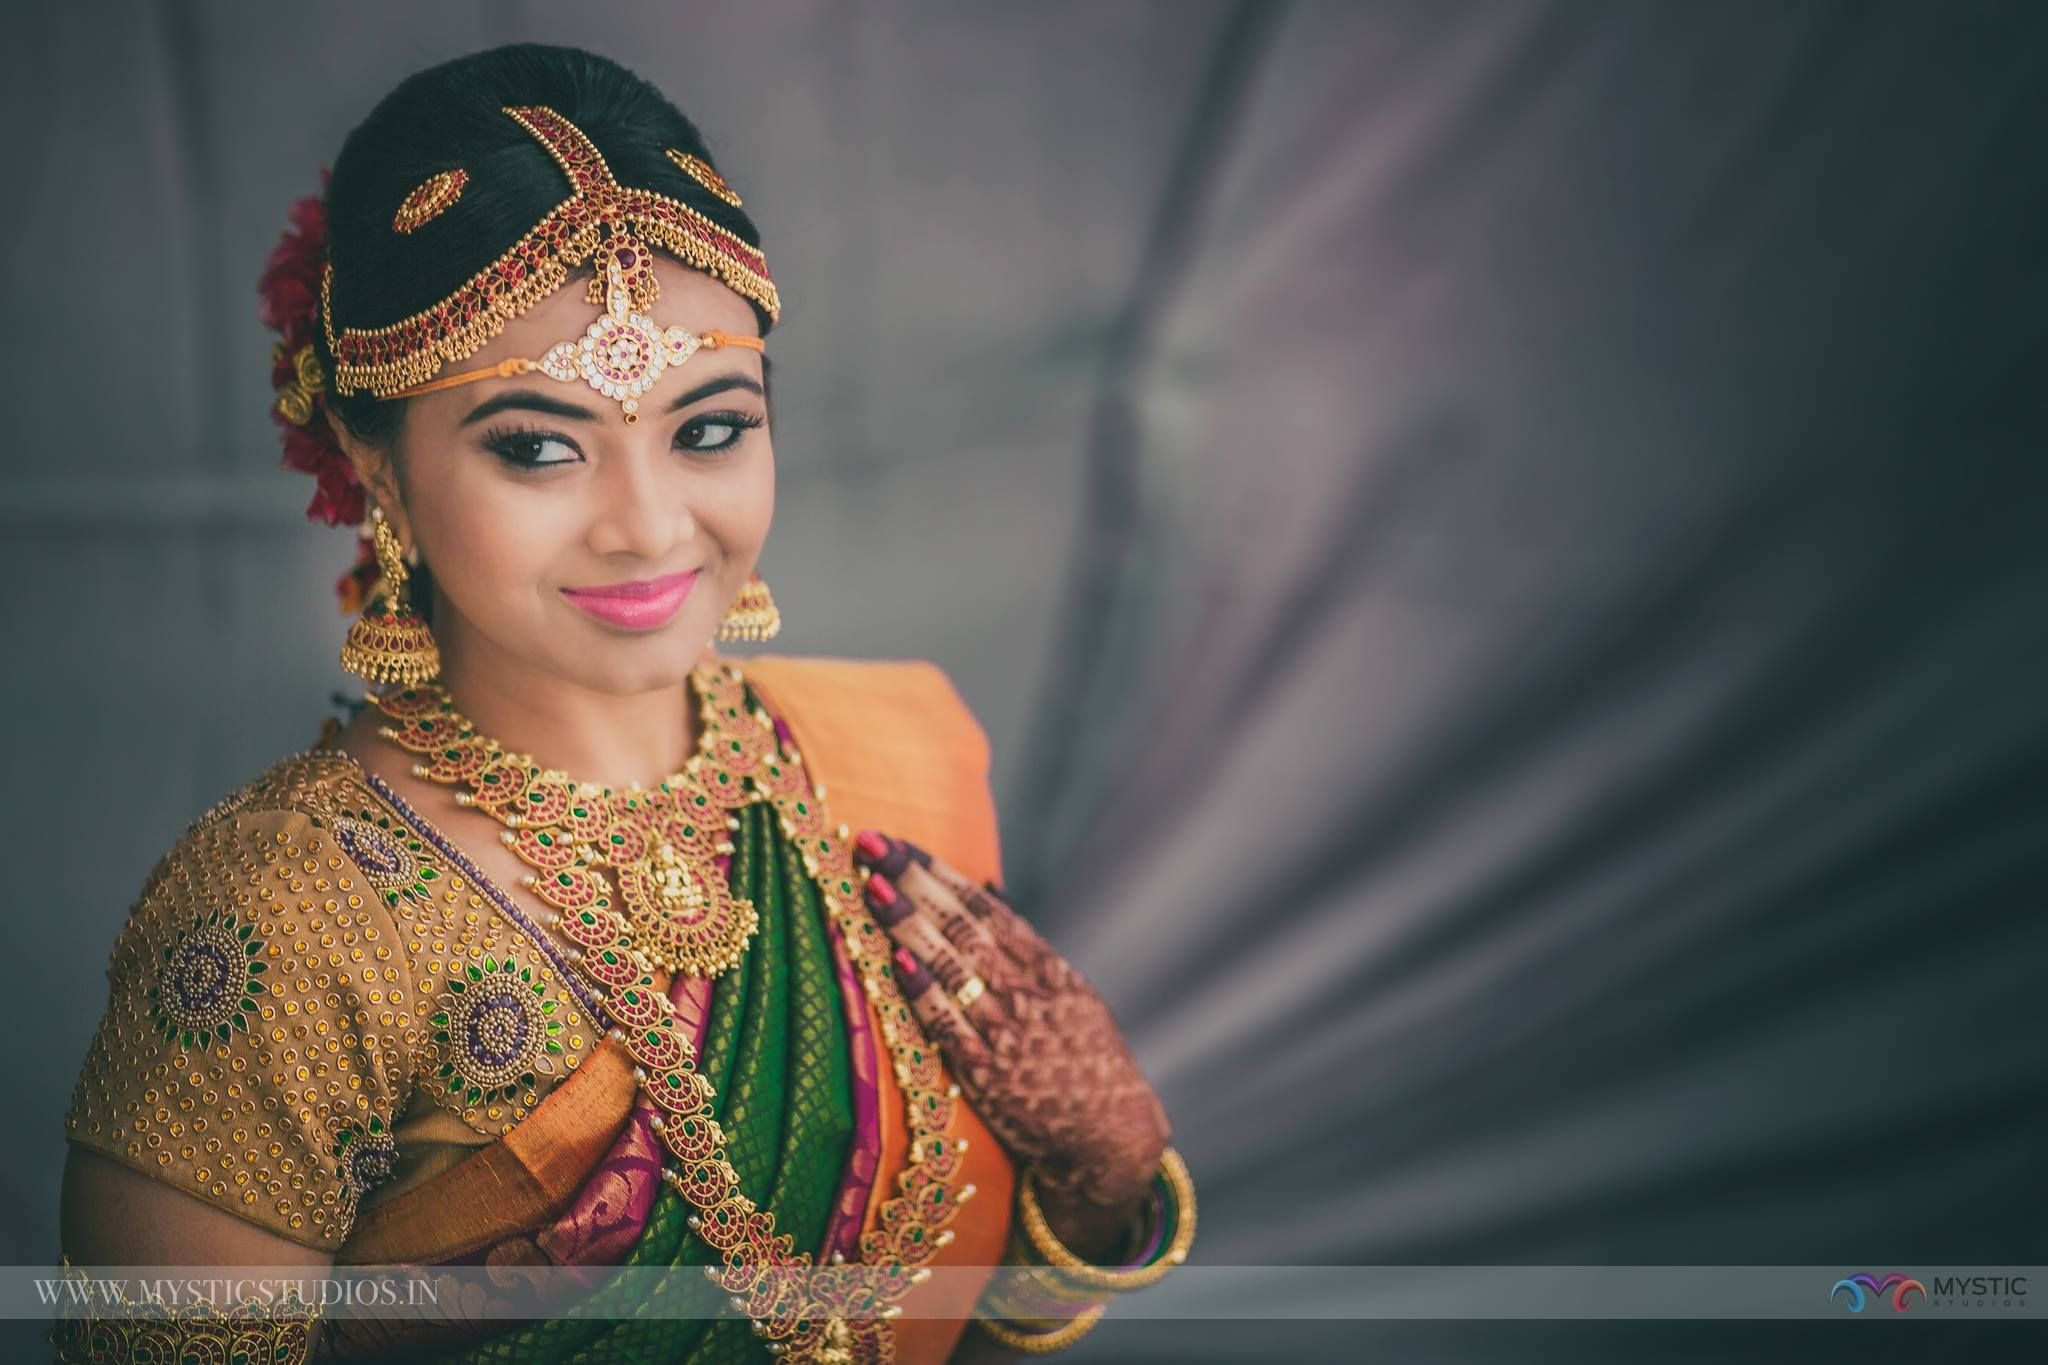 We Are The Bridal Jewellery Sets Rental In Chennai And Also Desginer